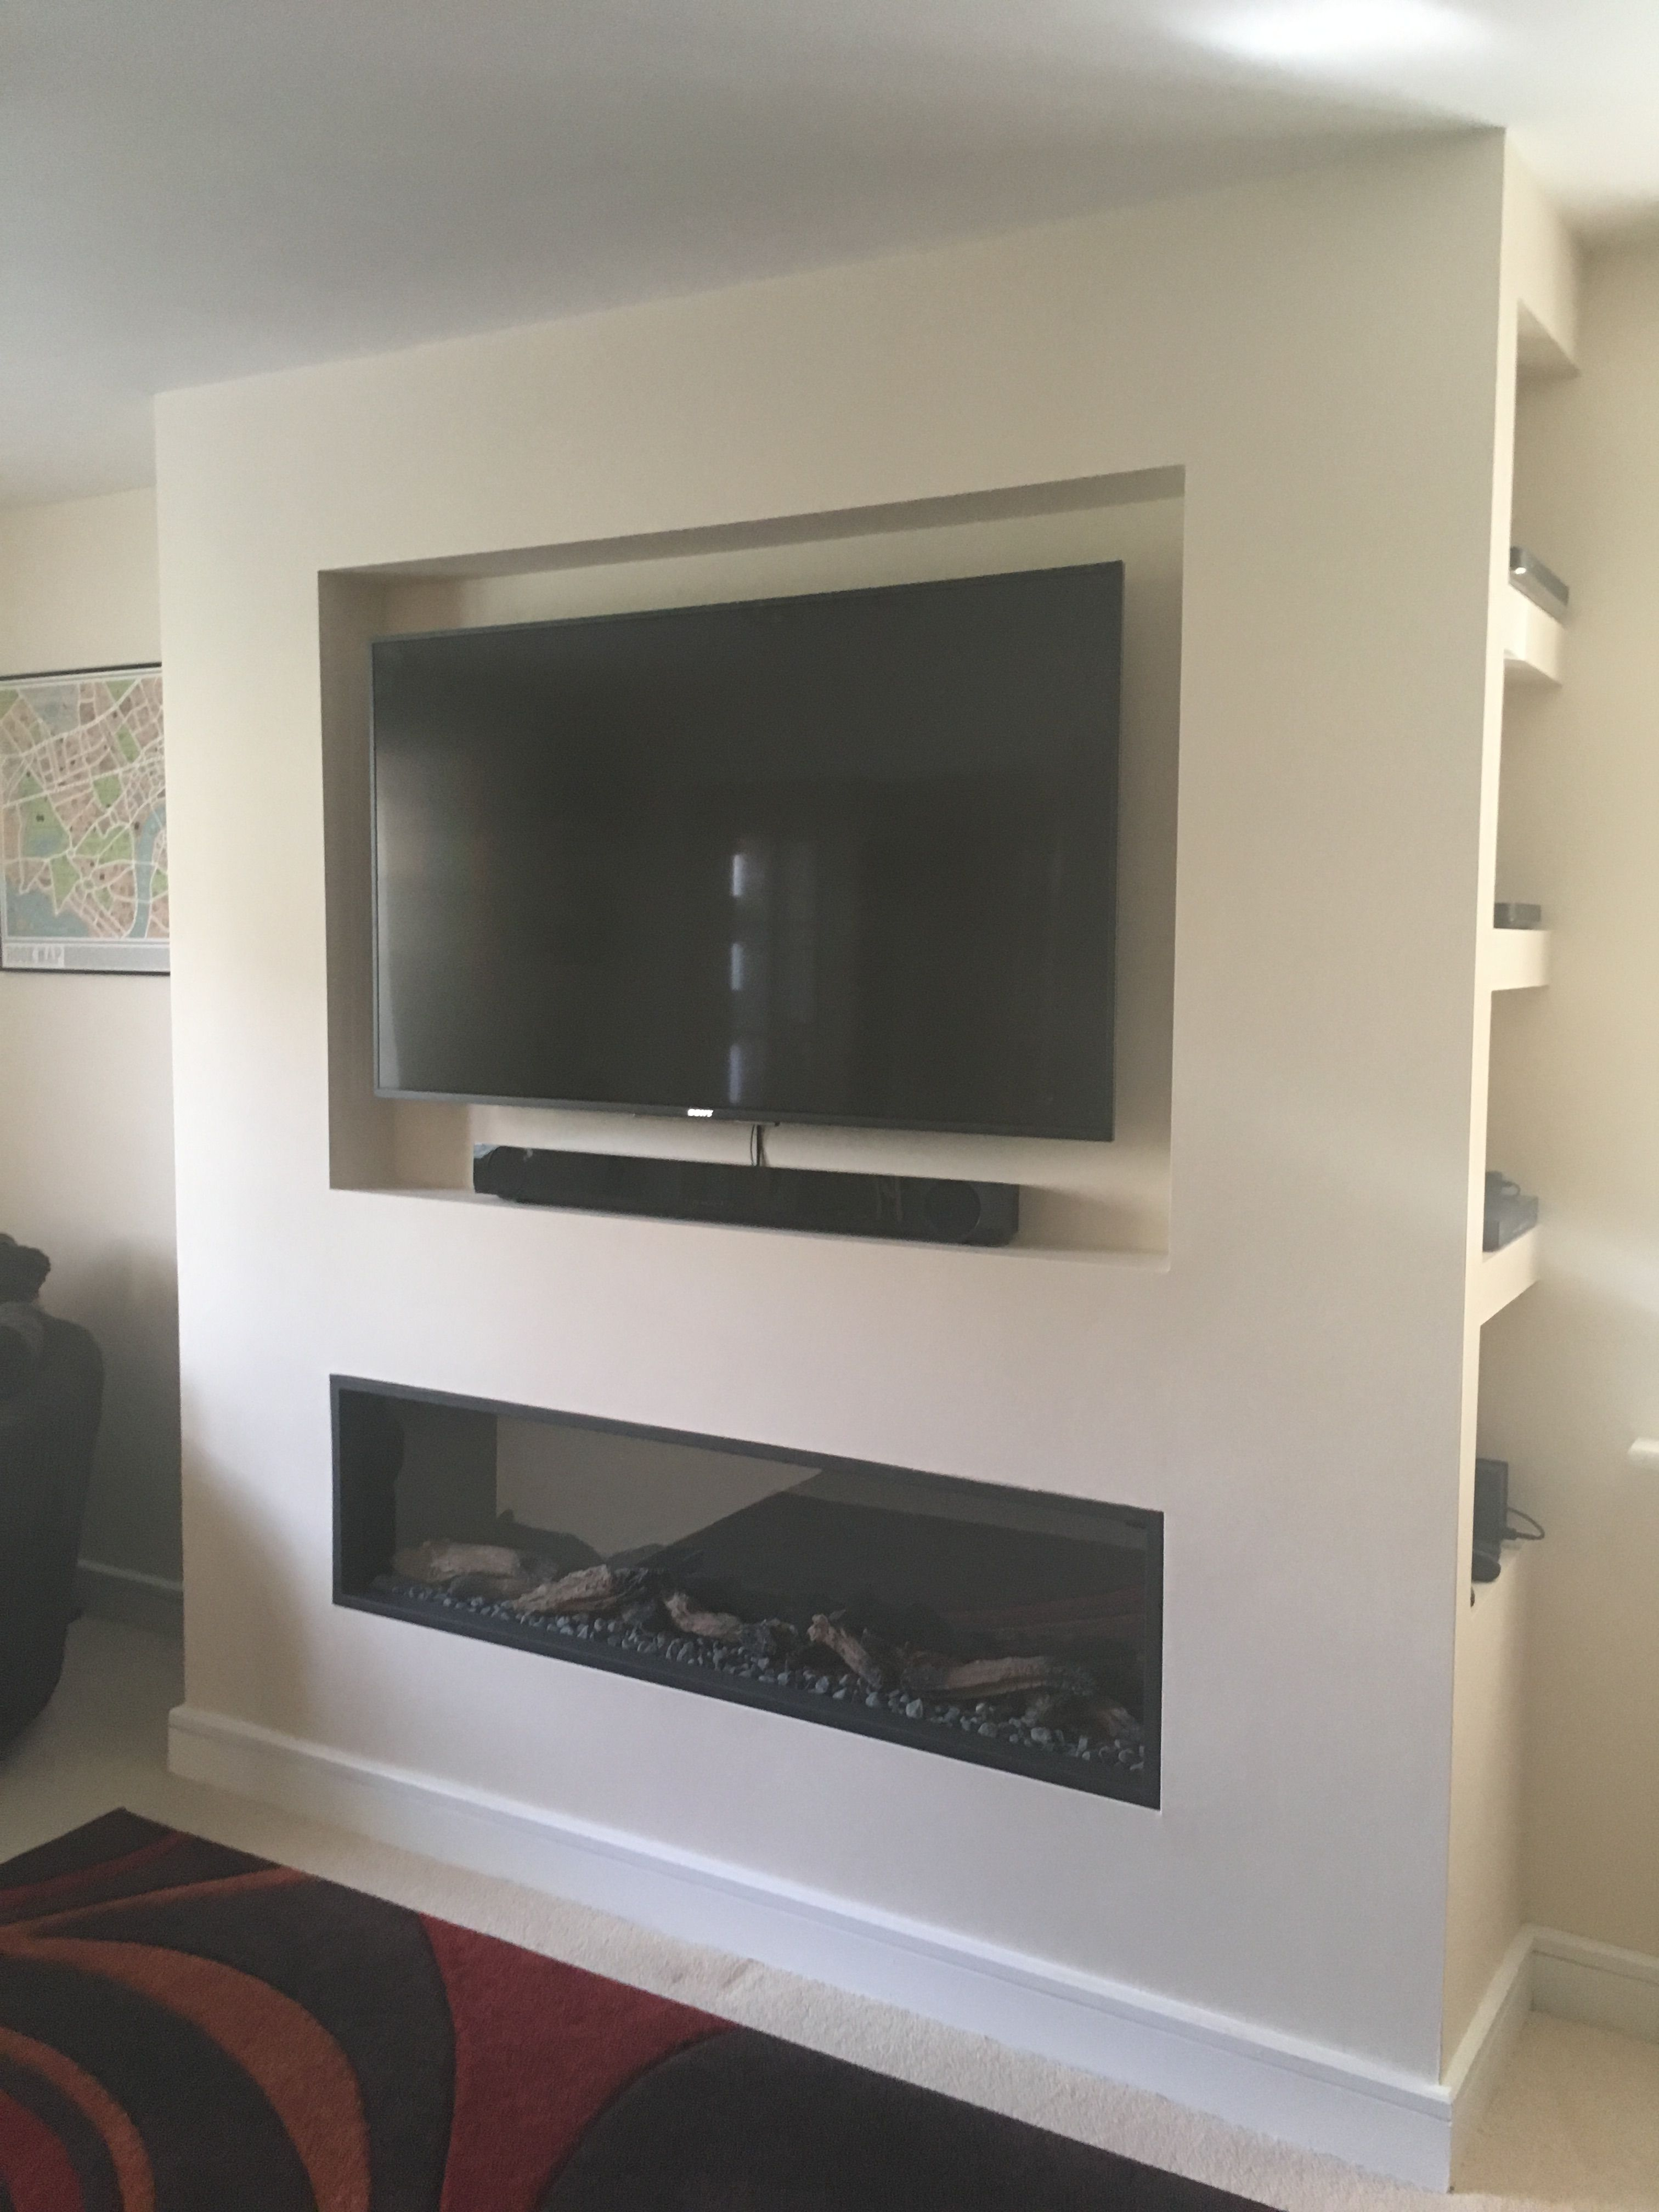 Wall Mounted Recessed Tv Sound Bar Inset Fireplace Modern